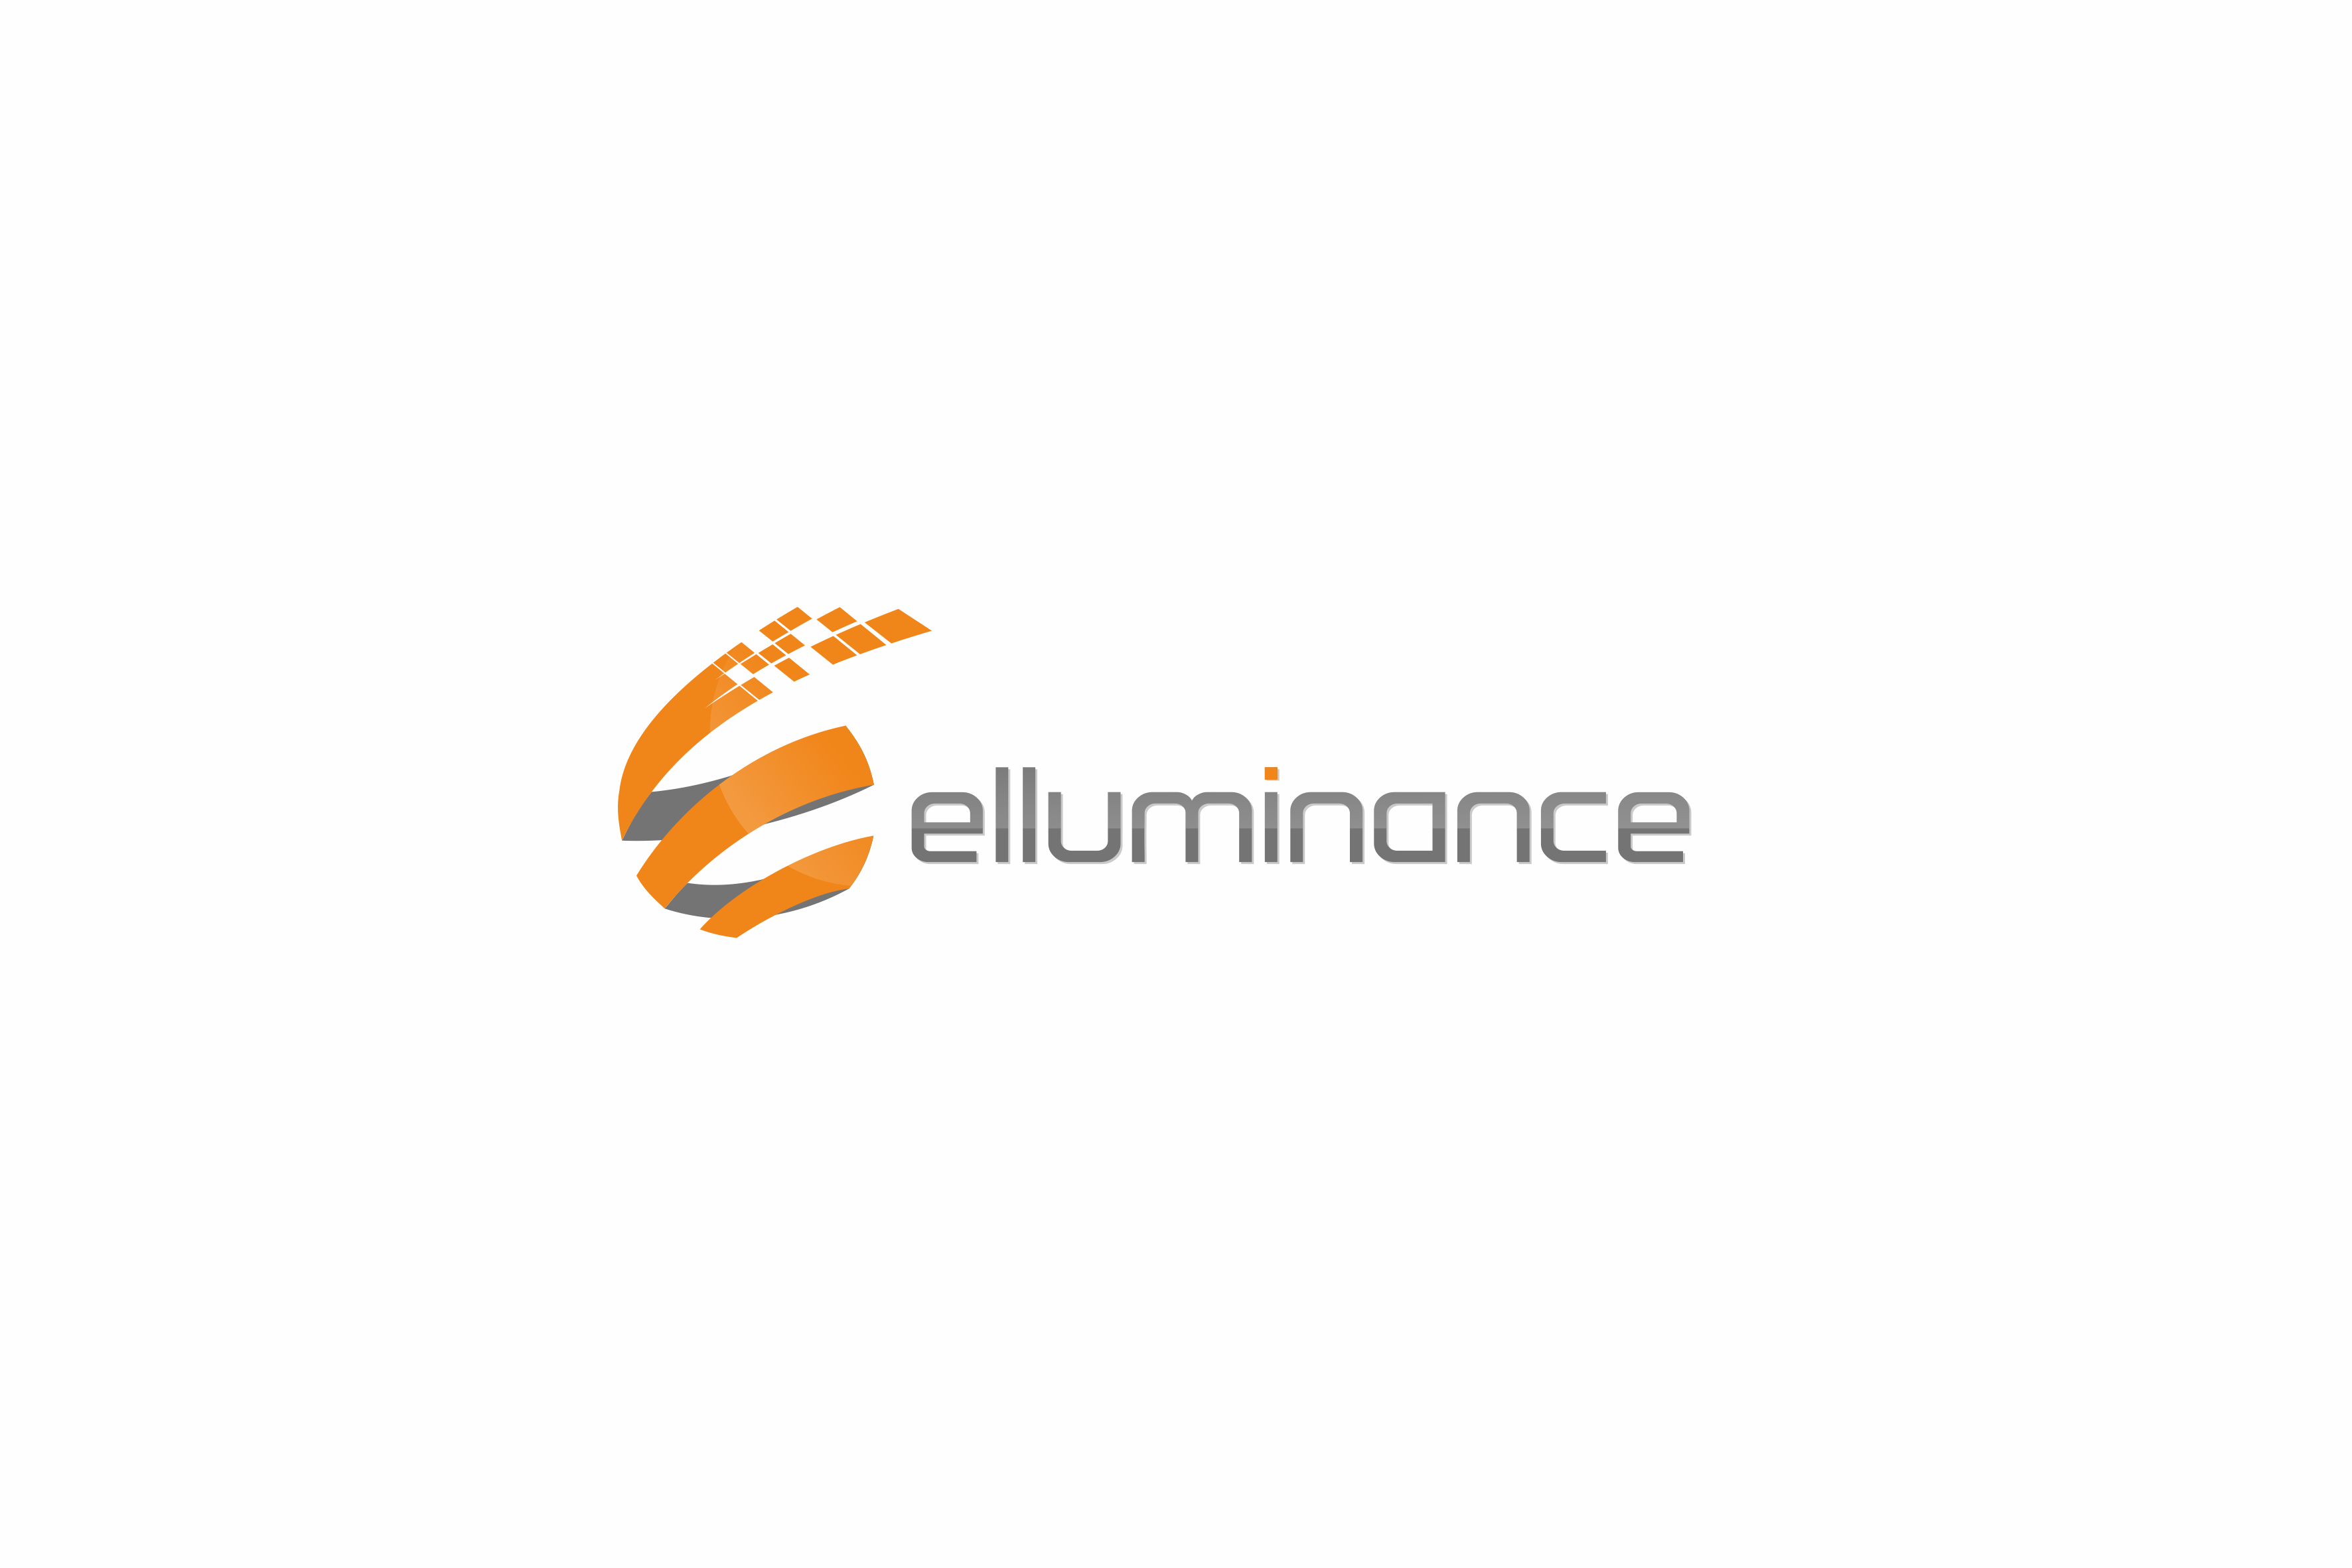 Help Elluminance Big Data Company get an innovative logo and Website template for our launch!